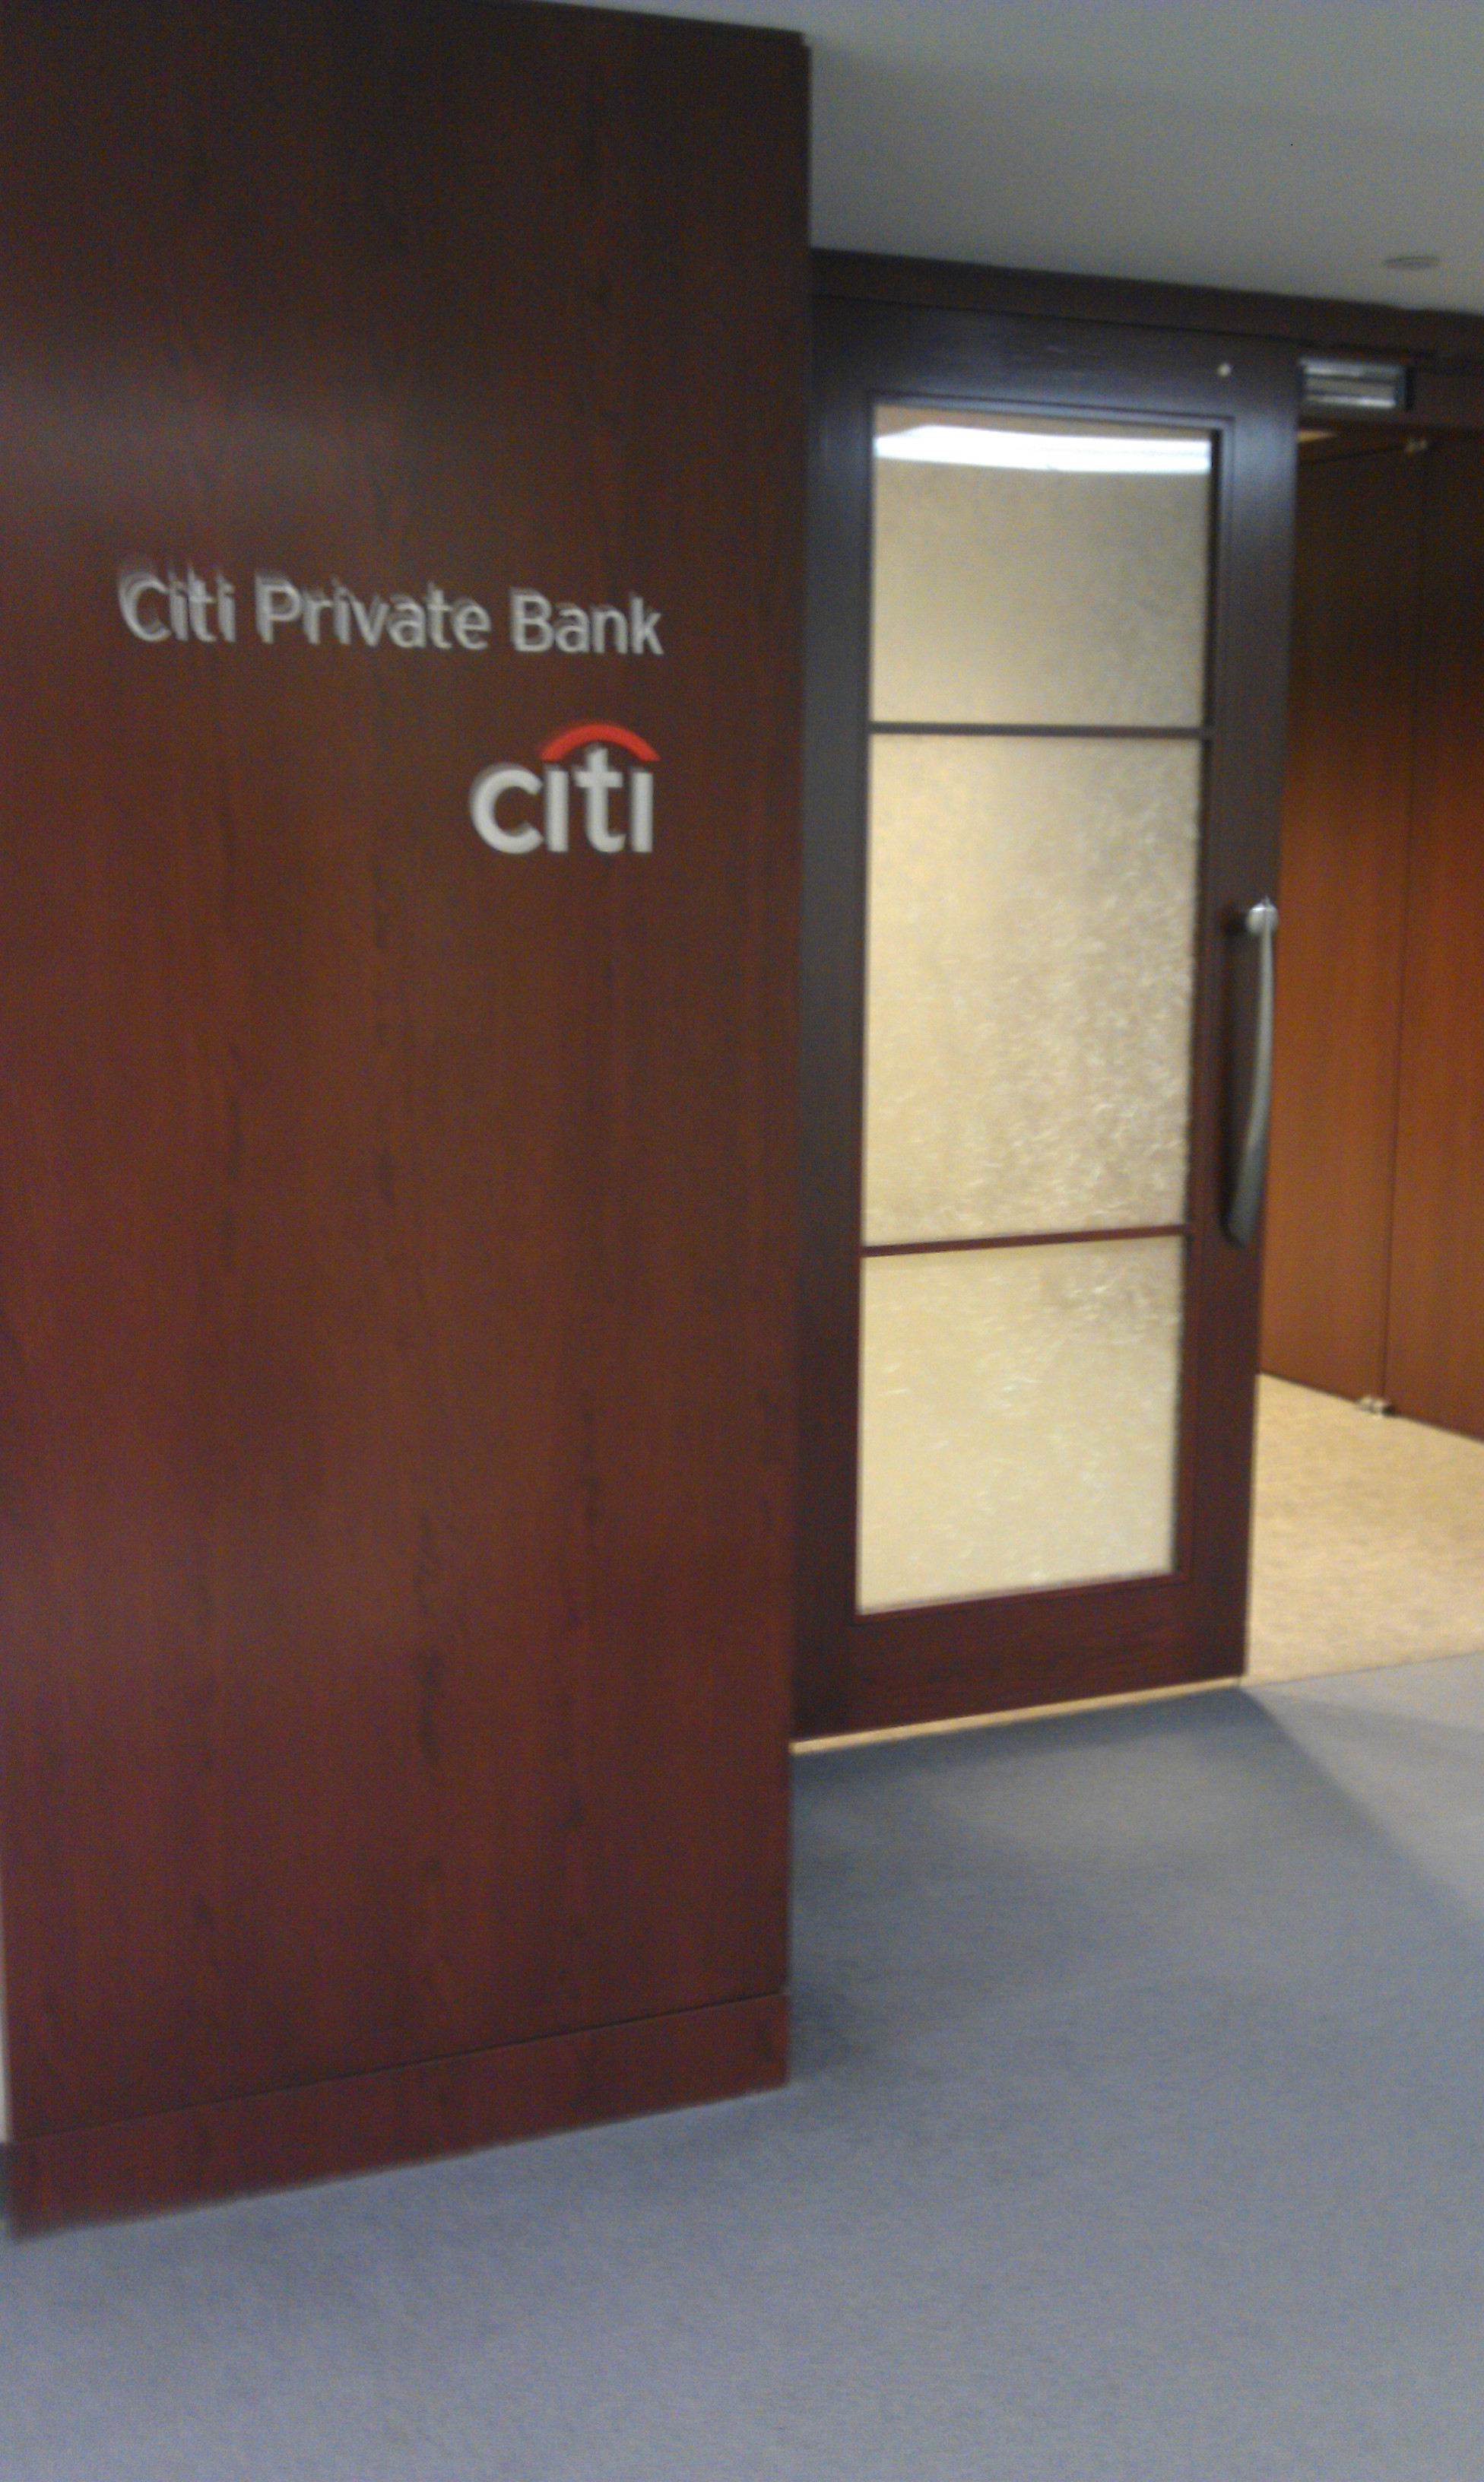 Citigroup wikipedia a citi private bank office altavistaventures Choice Image